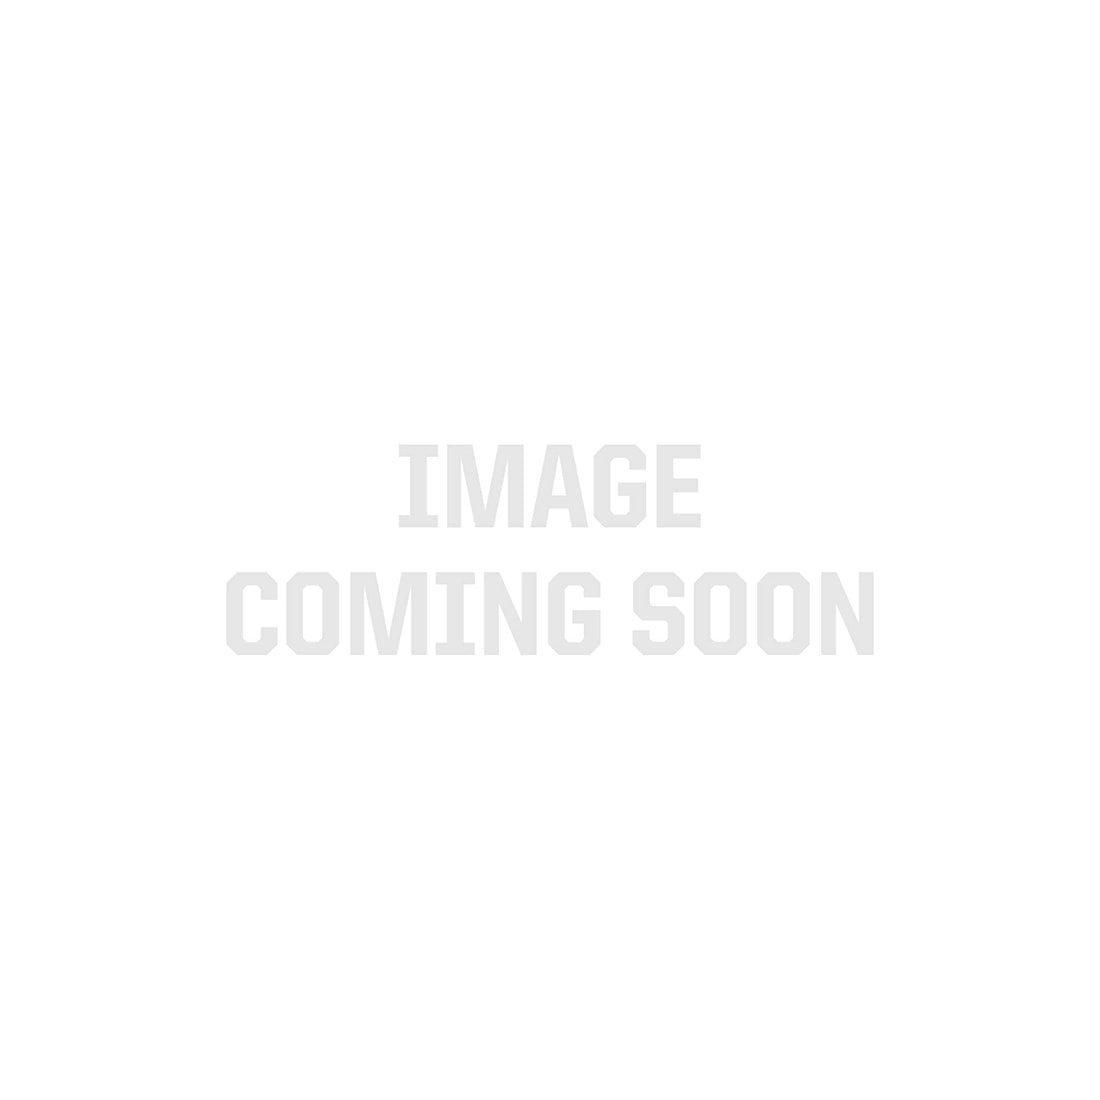 Plastic Mounting Bracket for INV03, SS10, and S12 Aluminum Channel